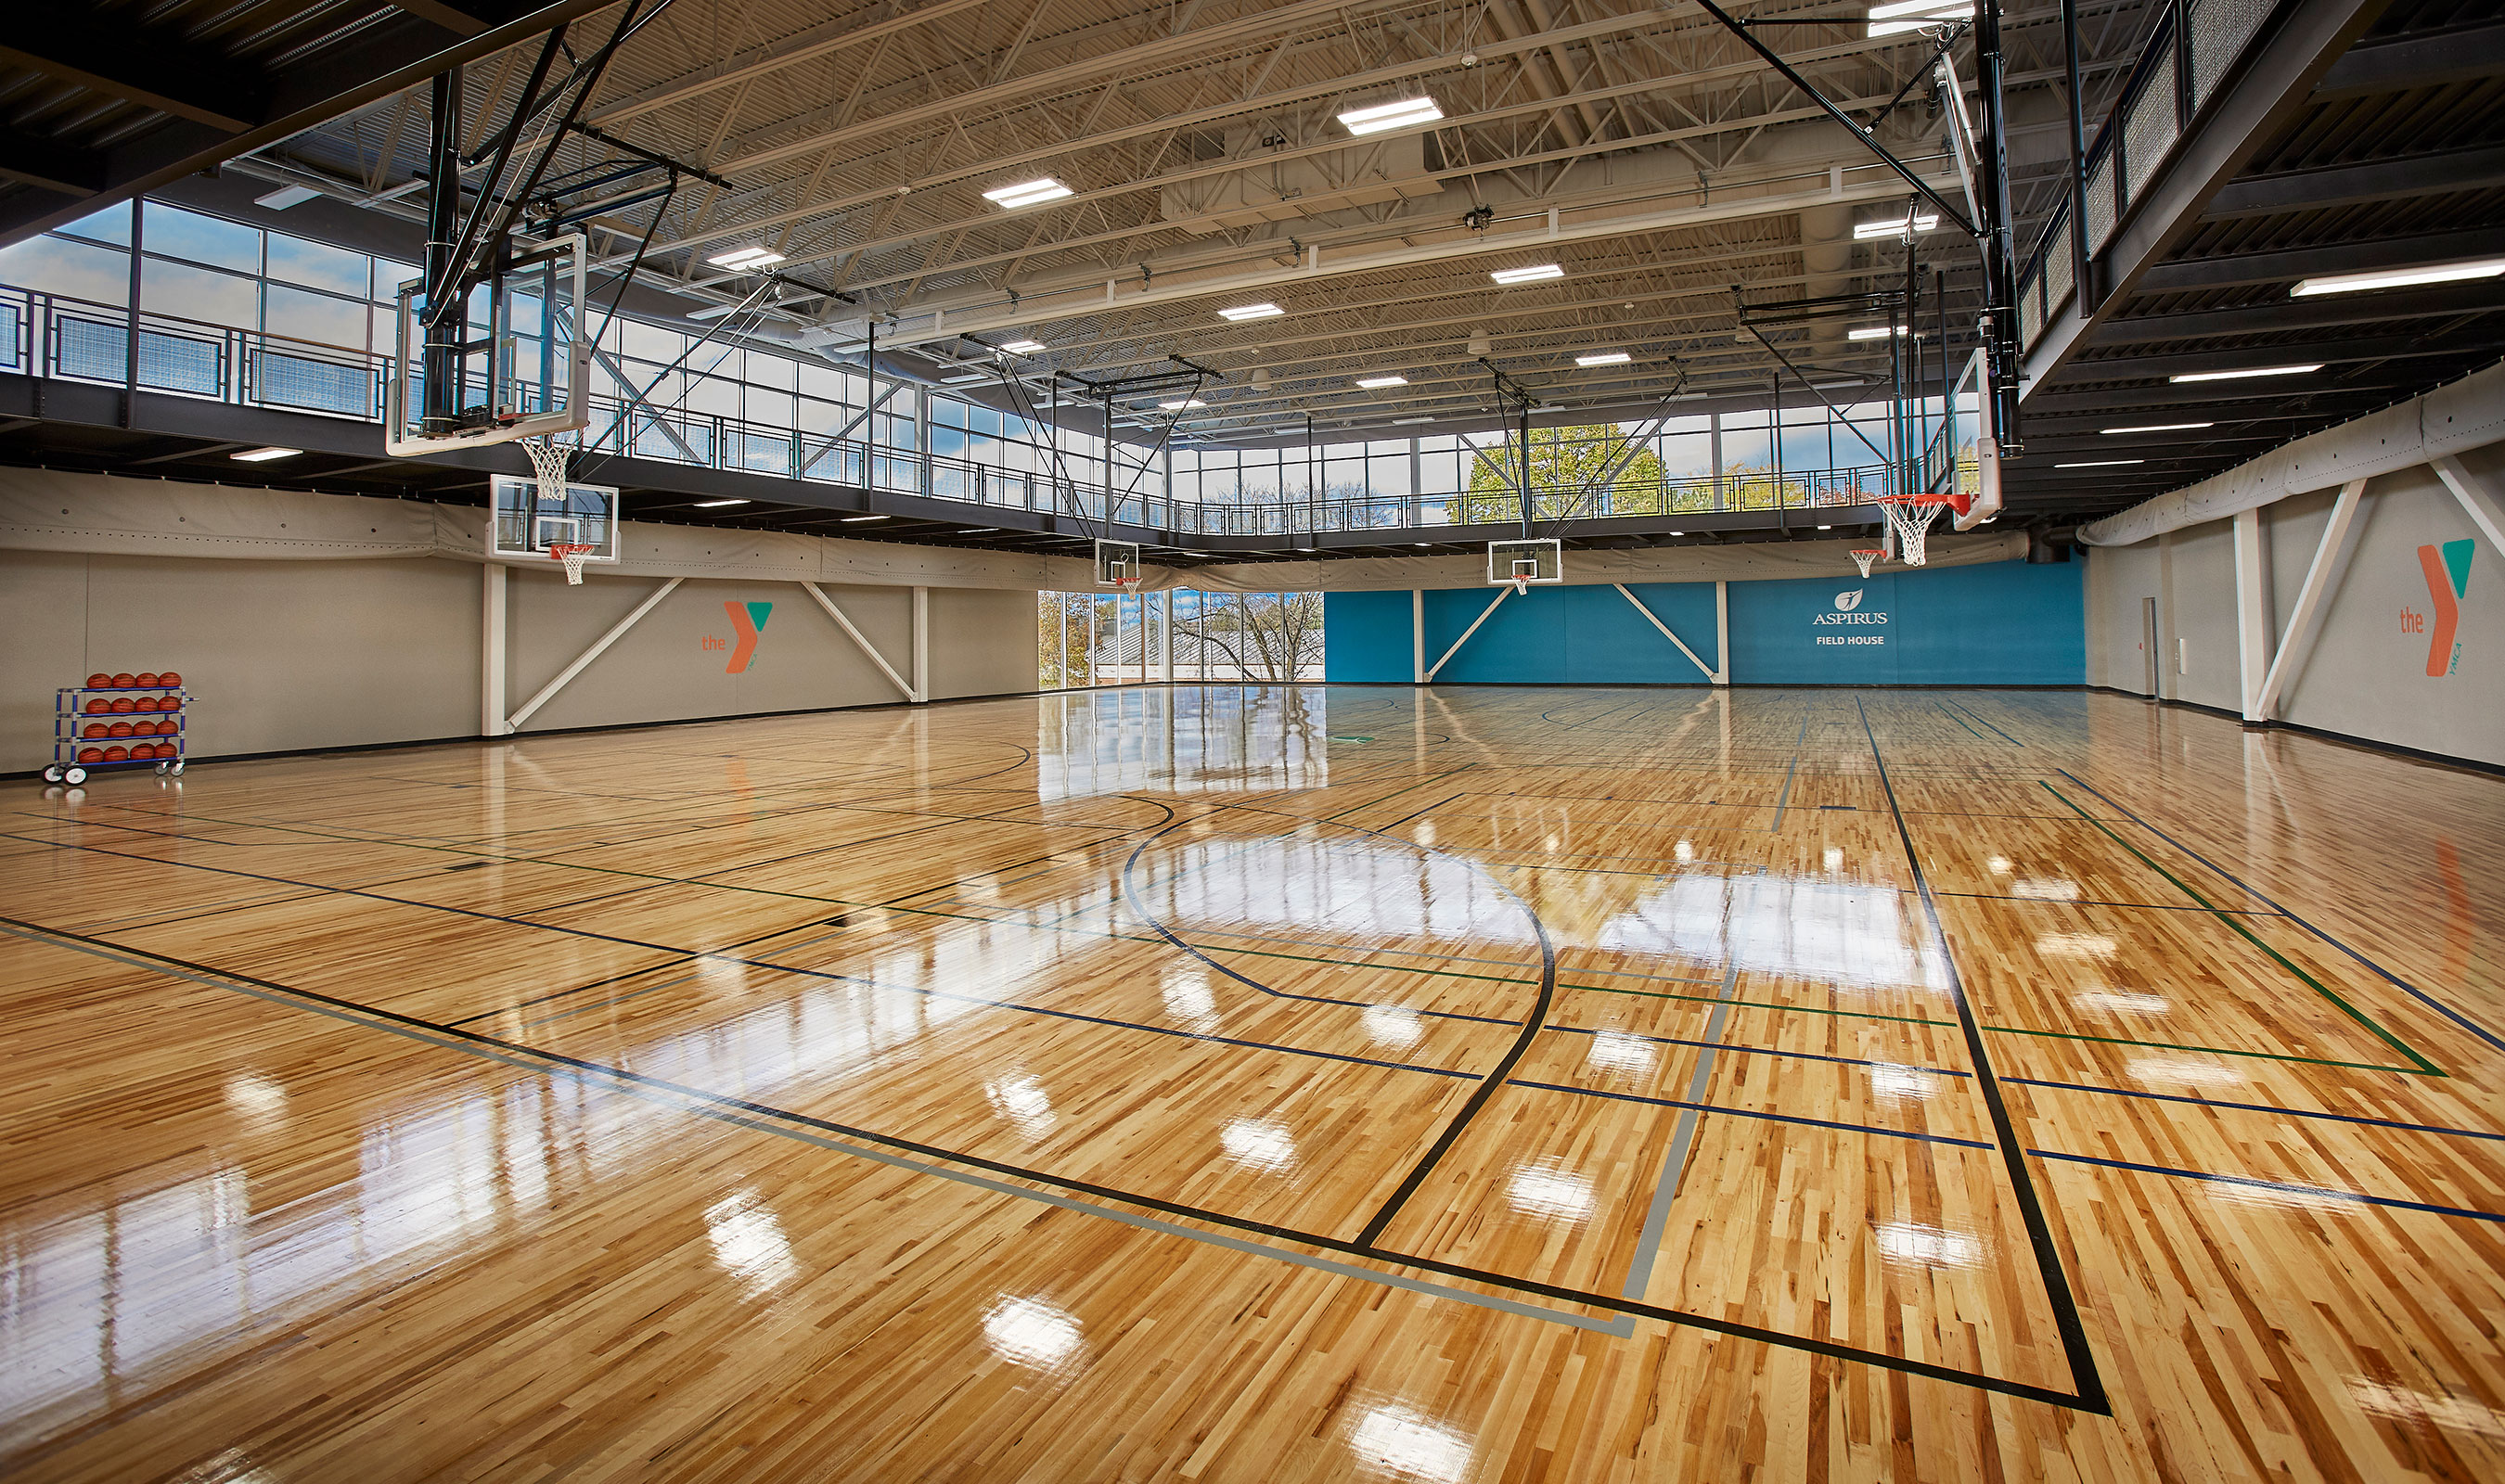 The Woodson YMCA in Wausau, Wisconsin features SJD-2, a Banker Wire woven wire mesh pattern in stainless steel.